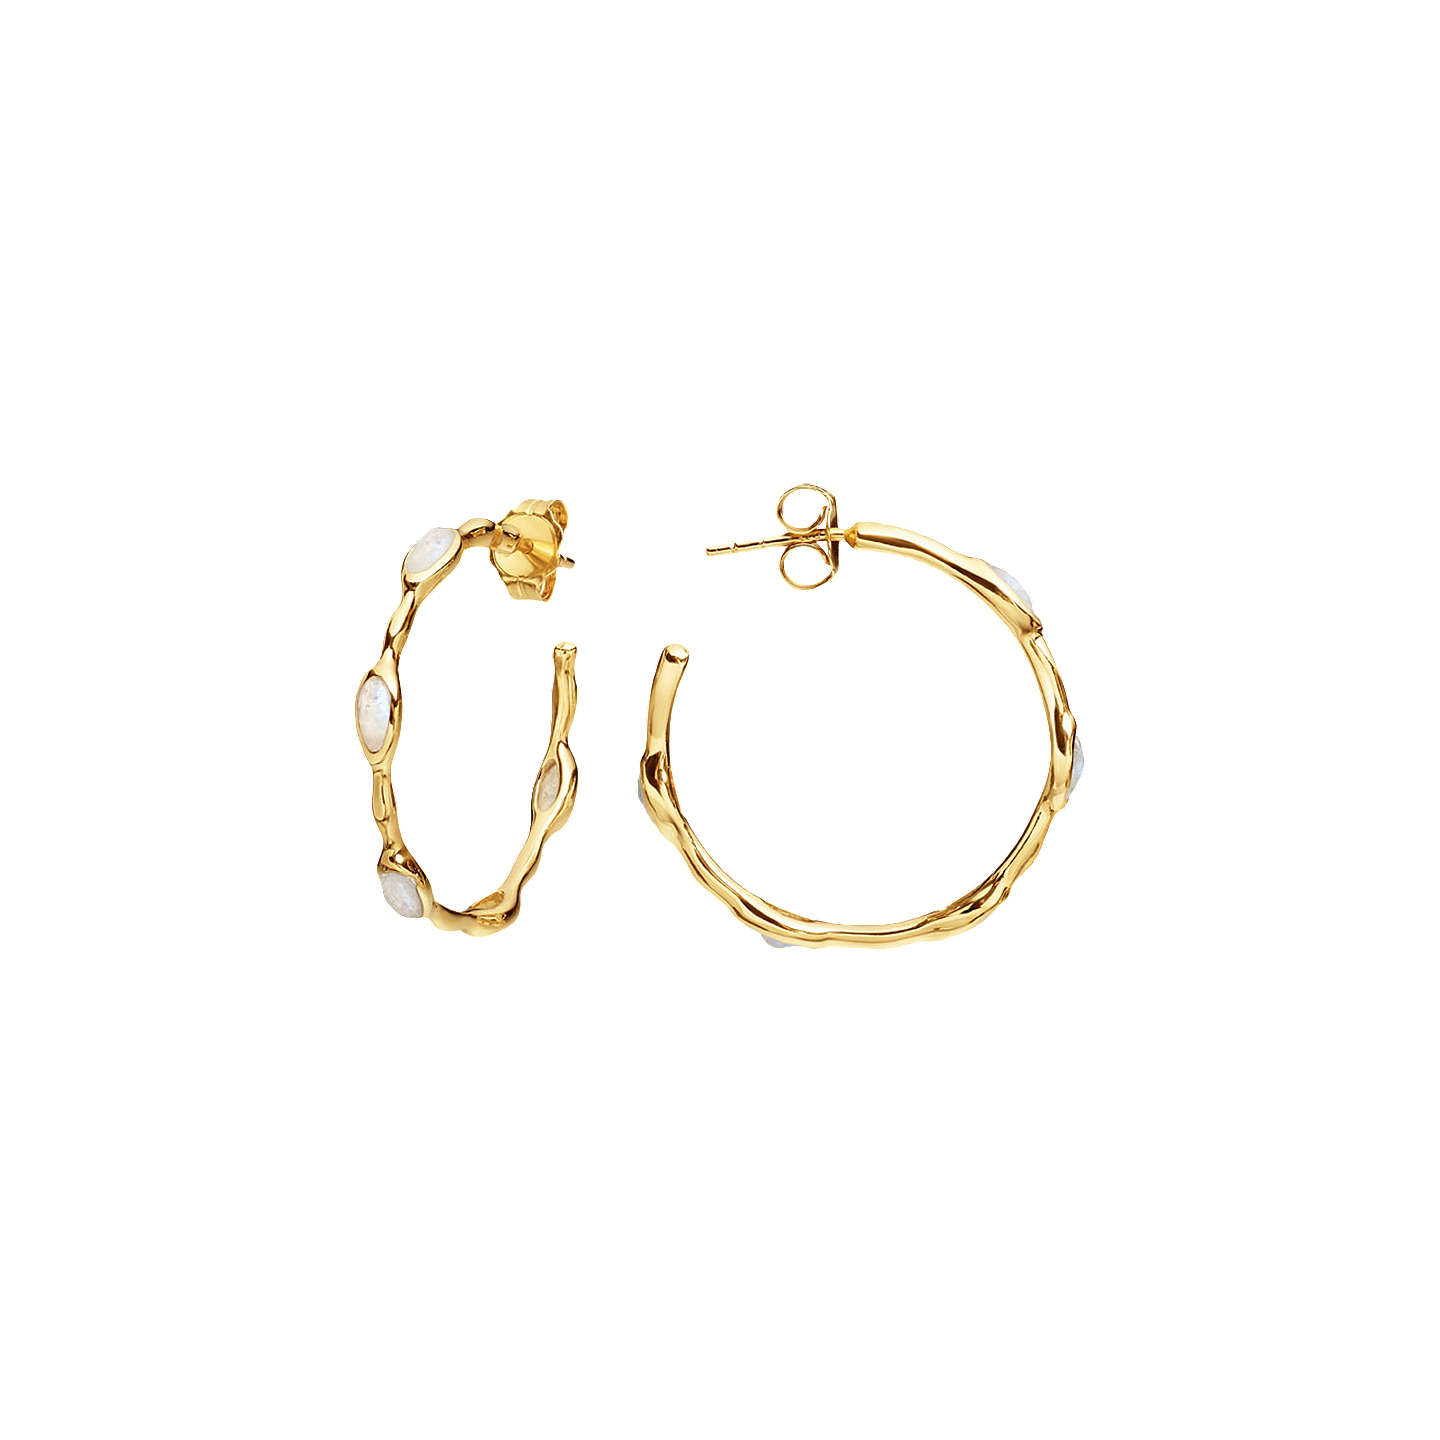 earrings product shop gold image hoop jewellery products elettra